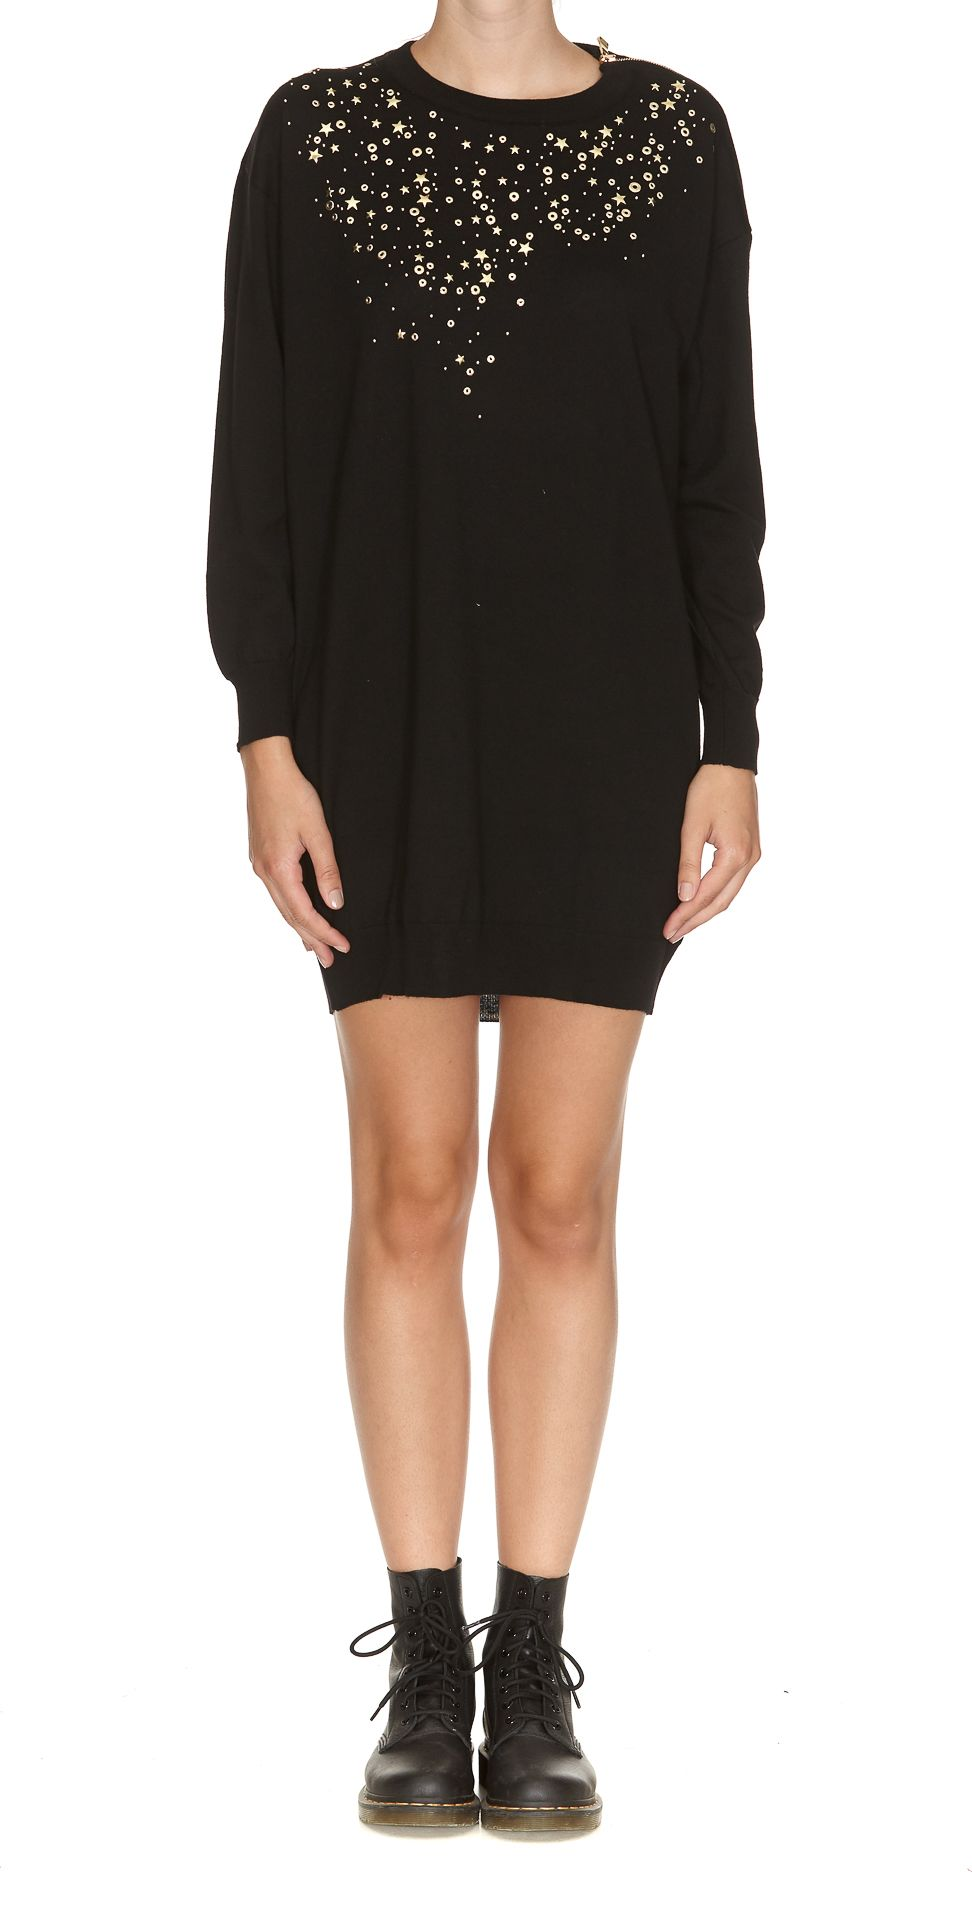 Boutique Moschino Zip Detail Dress